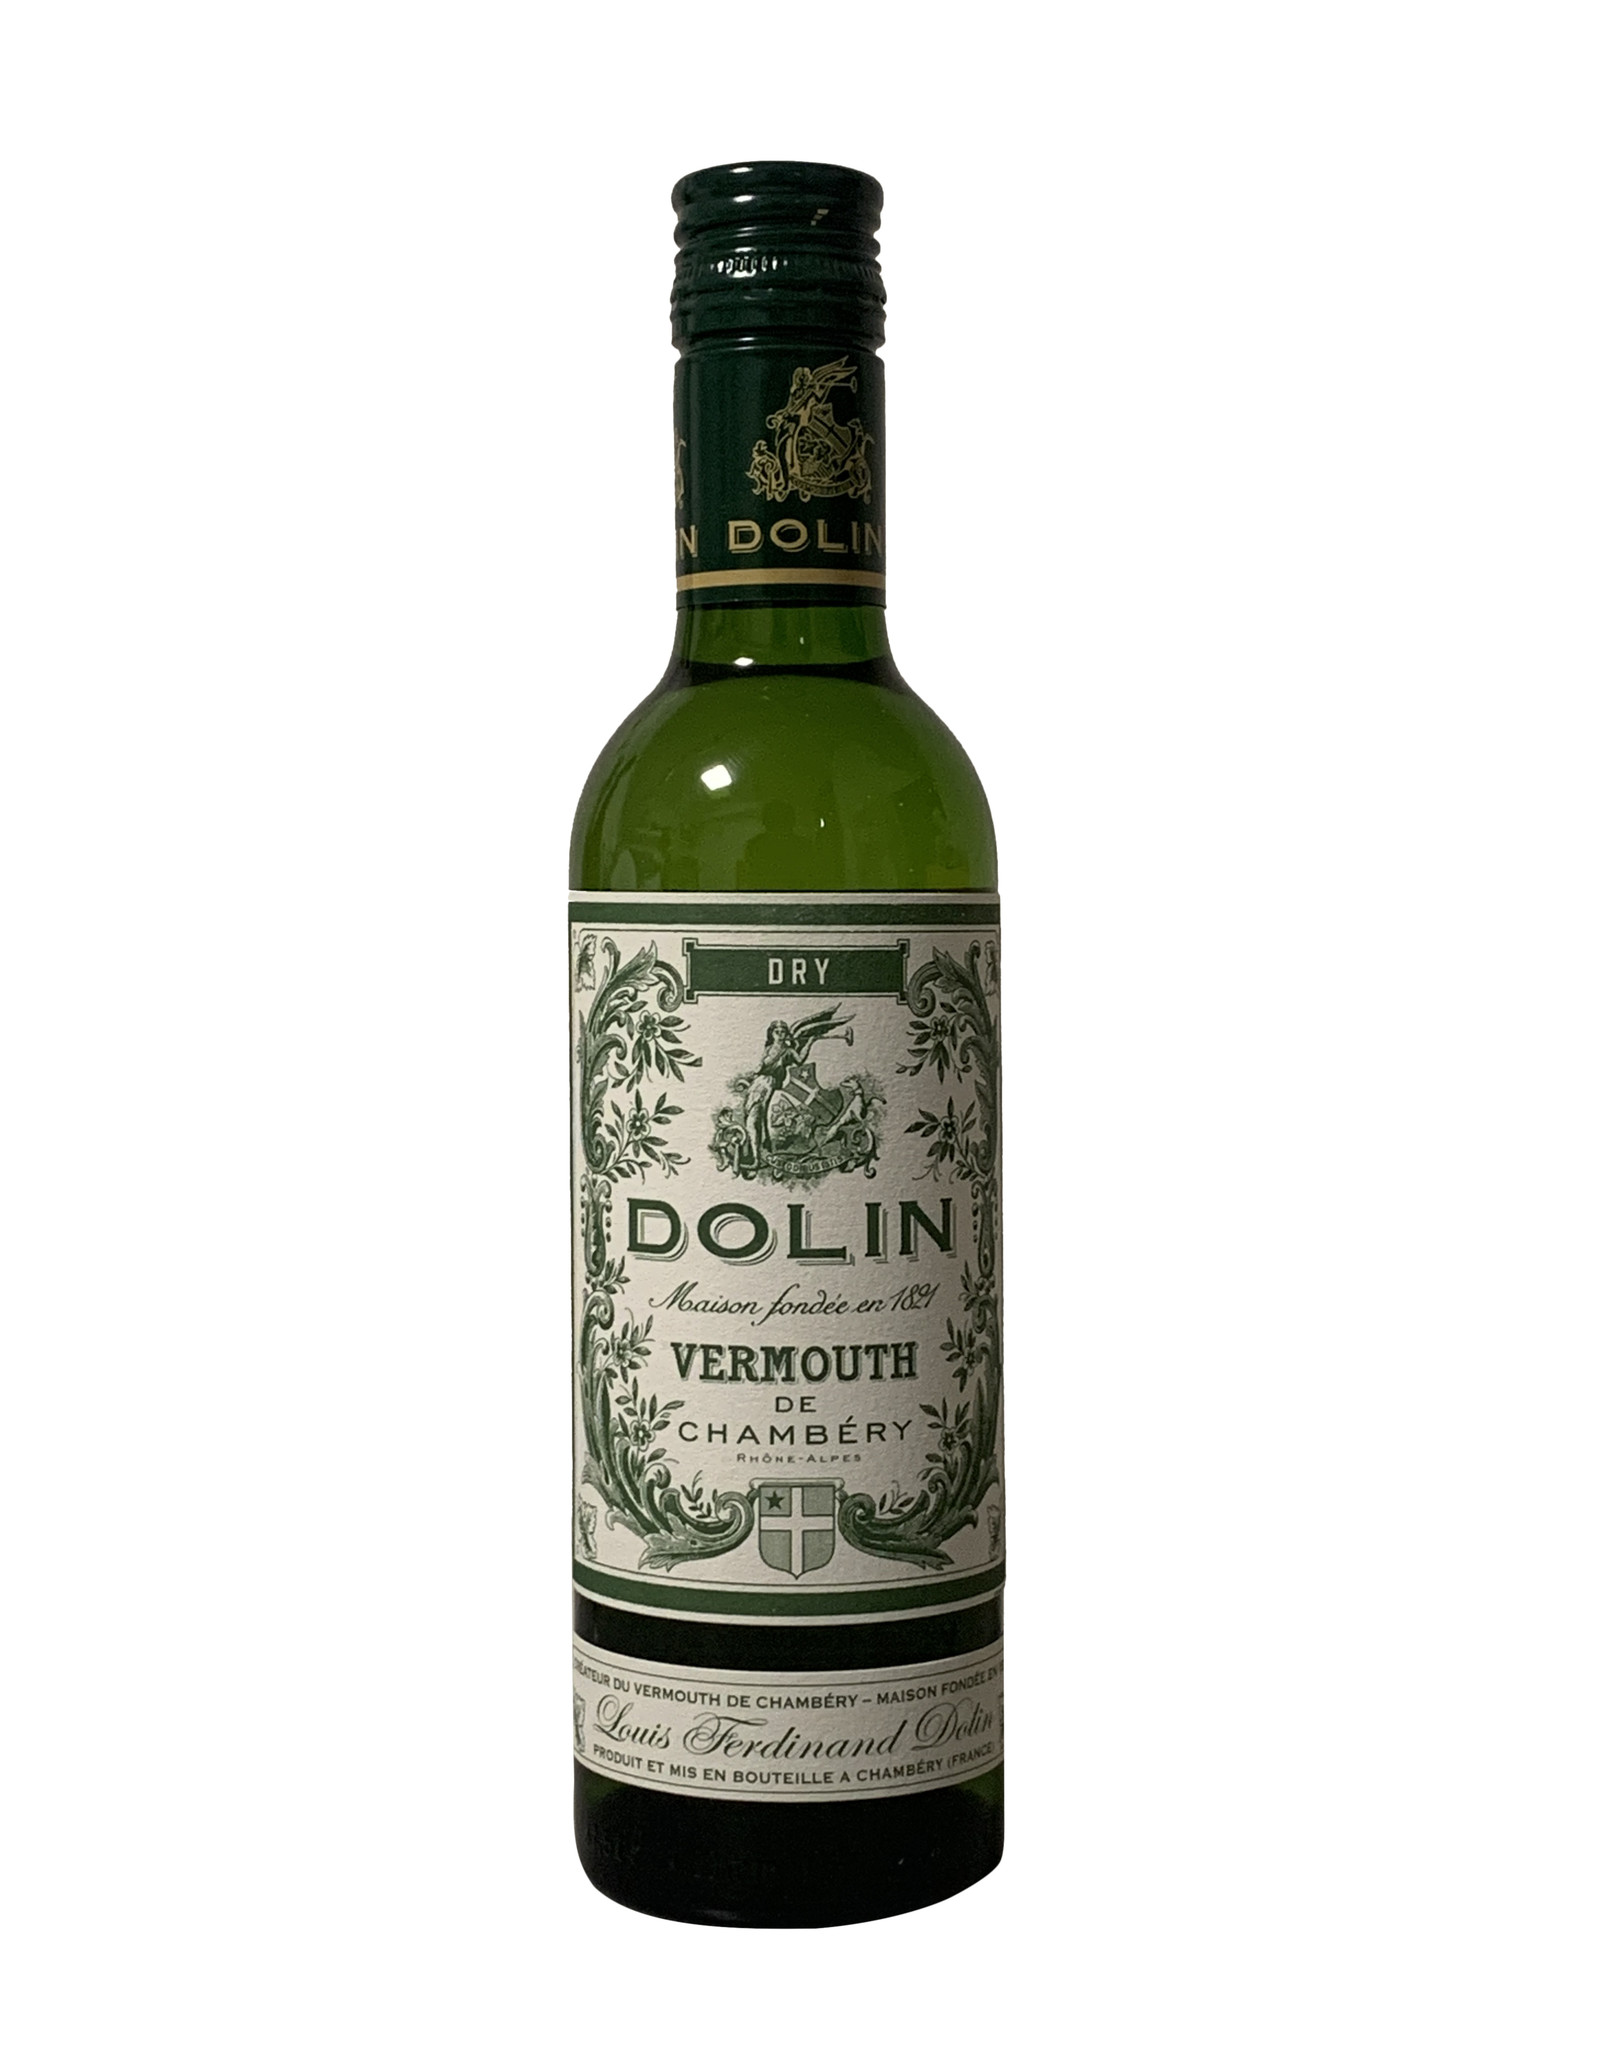 Dolin Dolin Vermouth de Chambéry Dry, France (375ml)